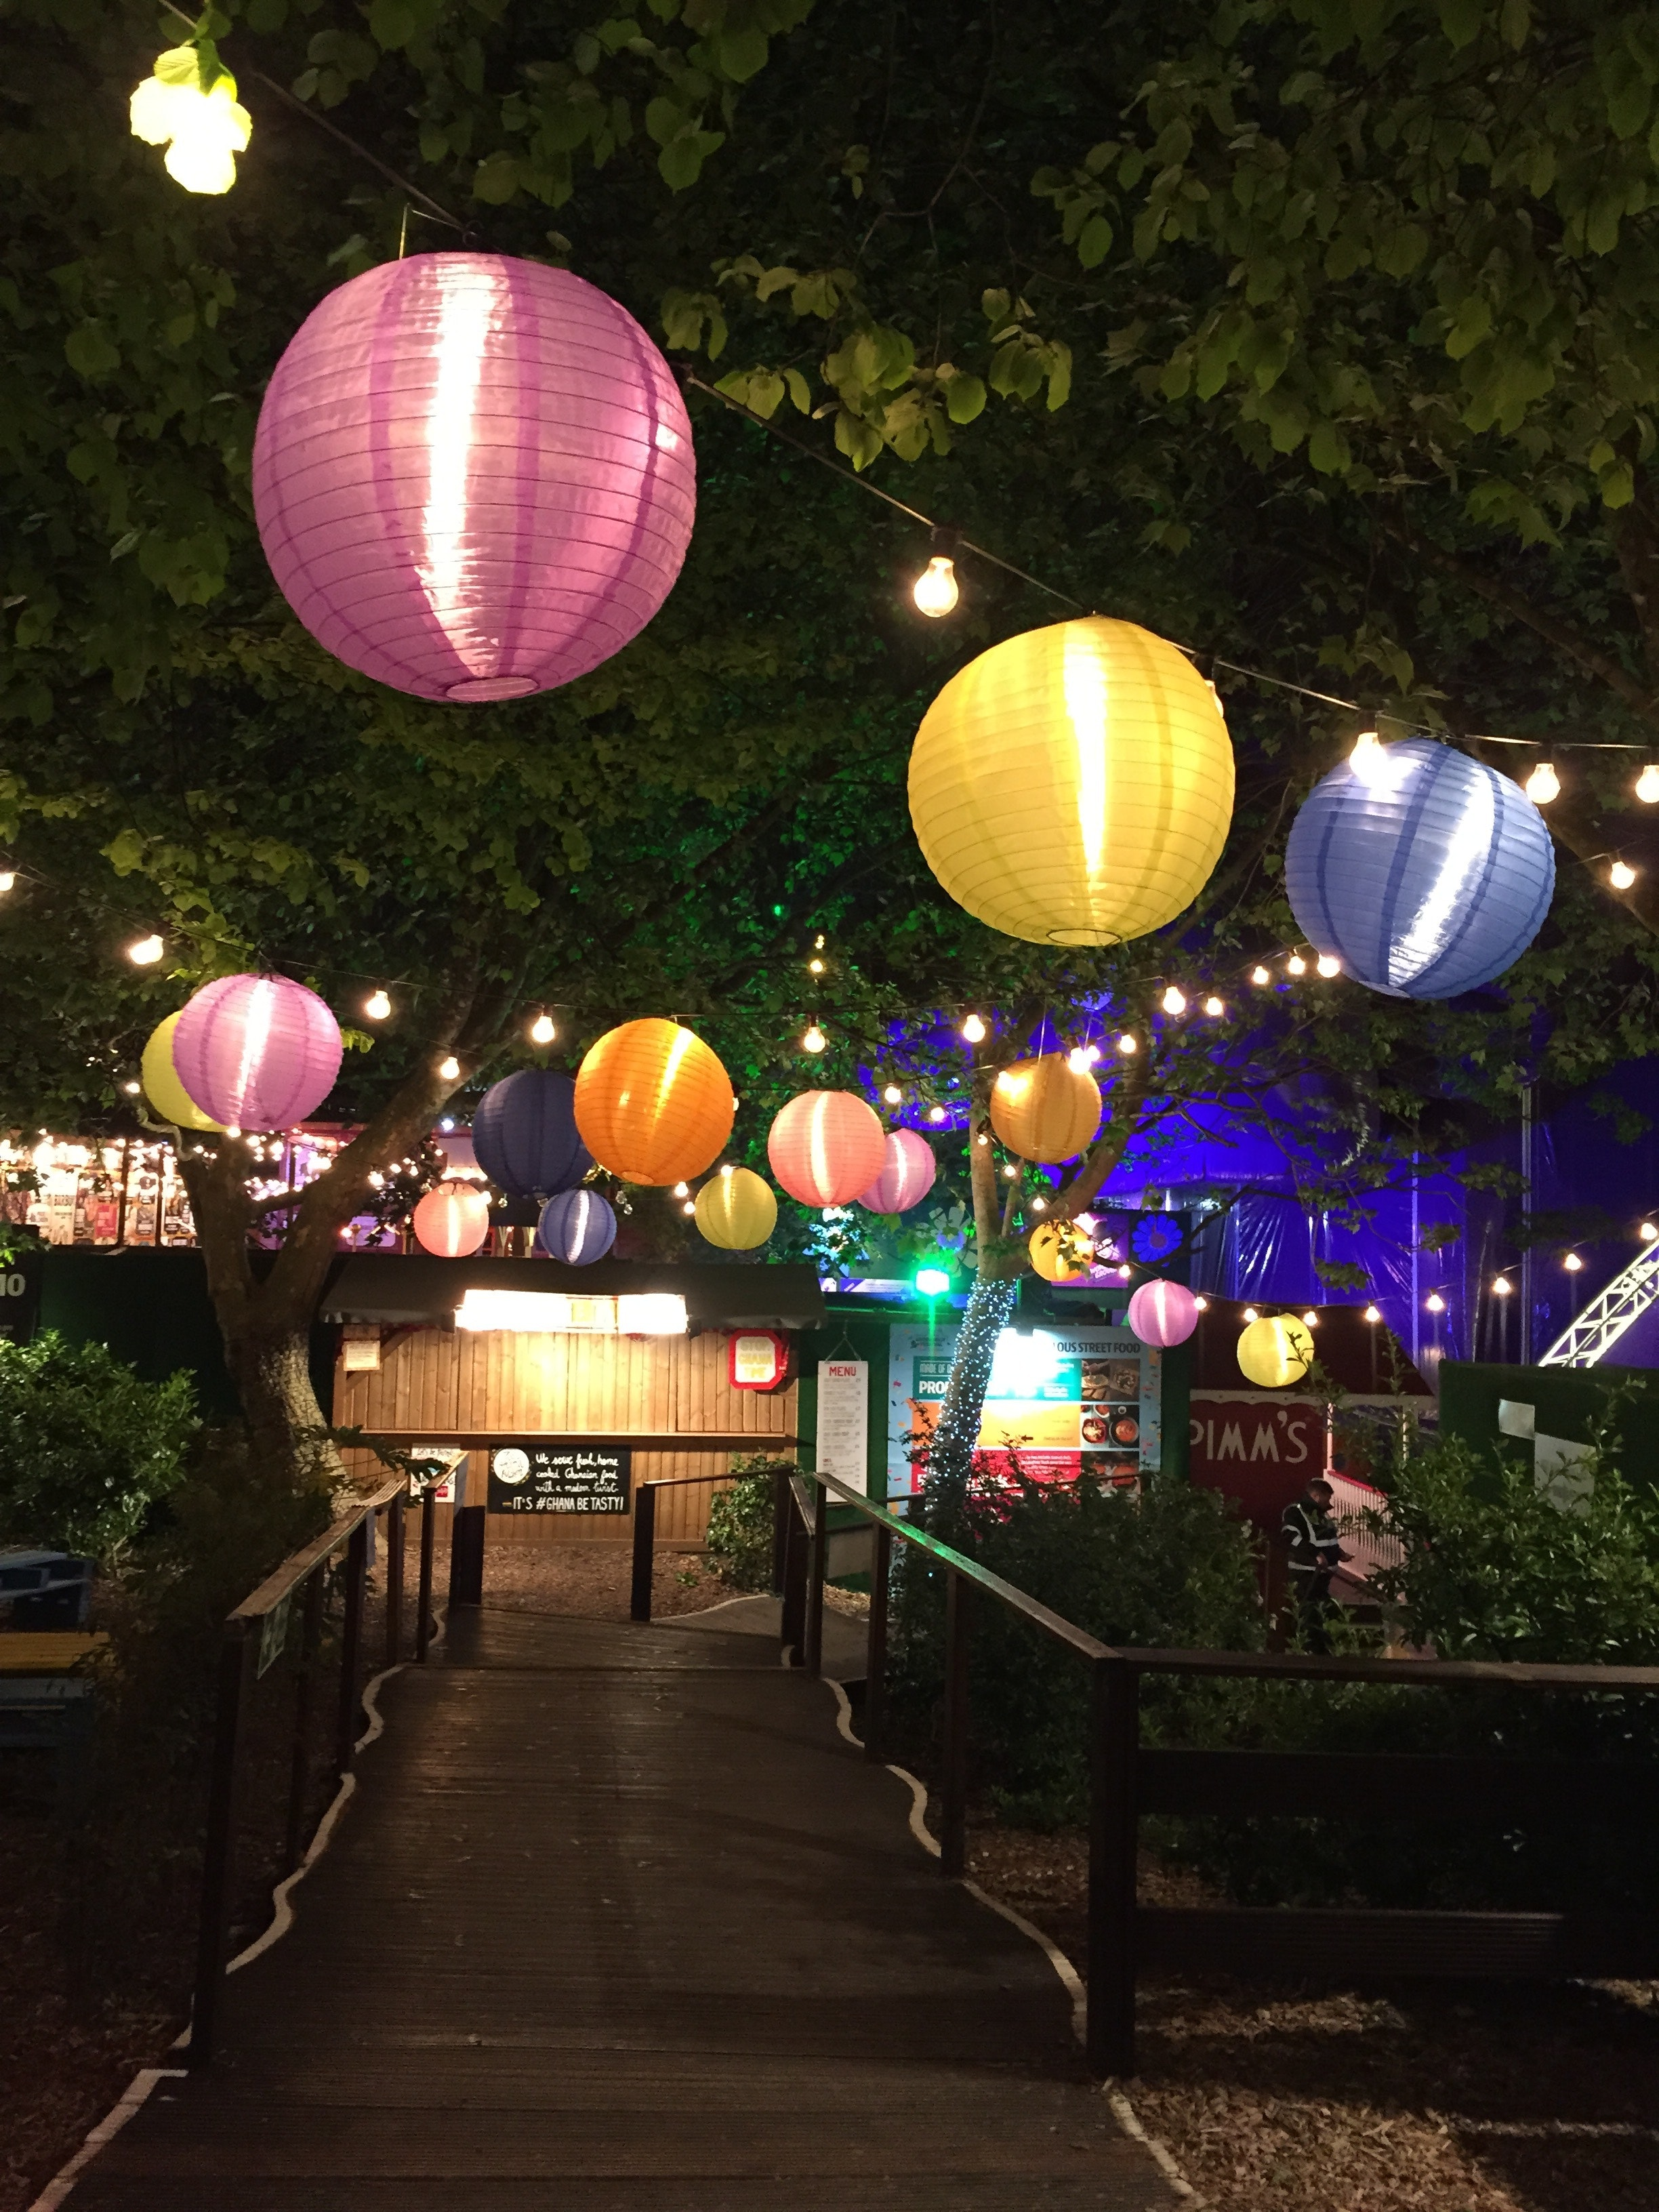 Assorted Hanging Paper Lamps, Paper lanterns, Park, Outdoors, Nature, HQ Photo